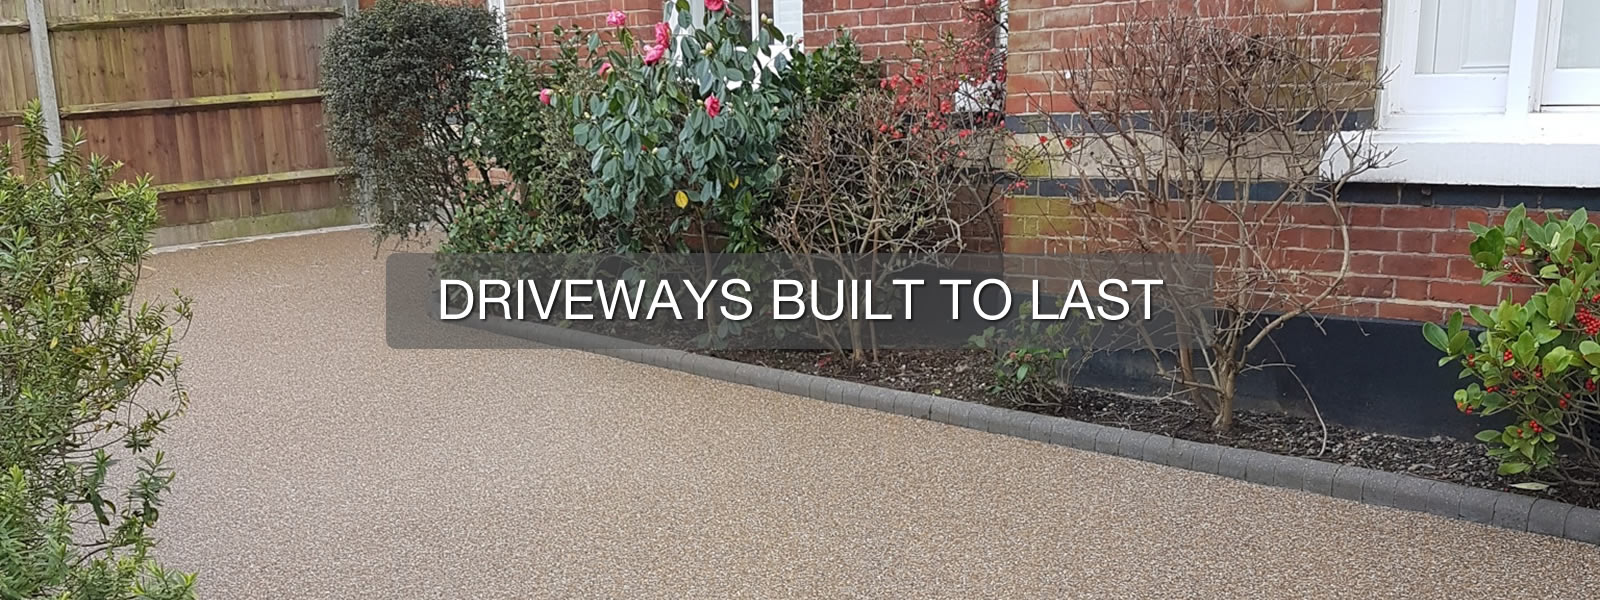 Glenco Driveways - built to last